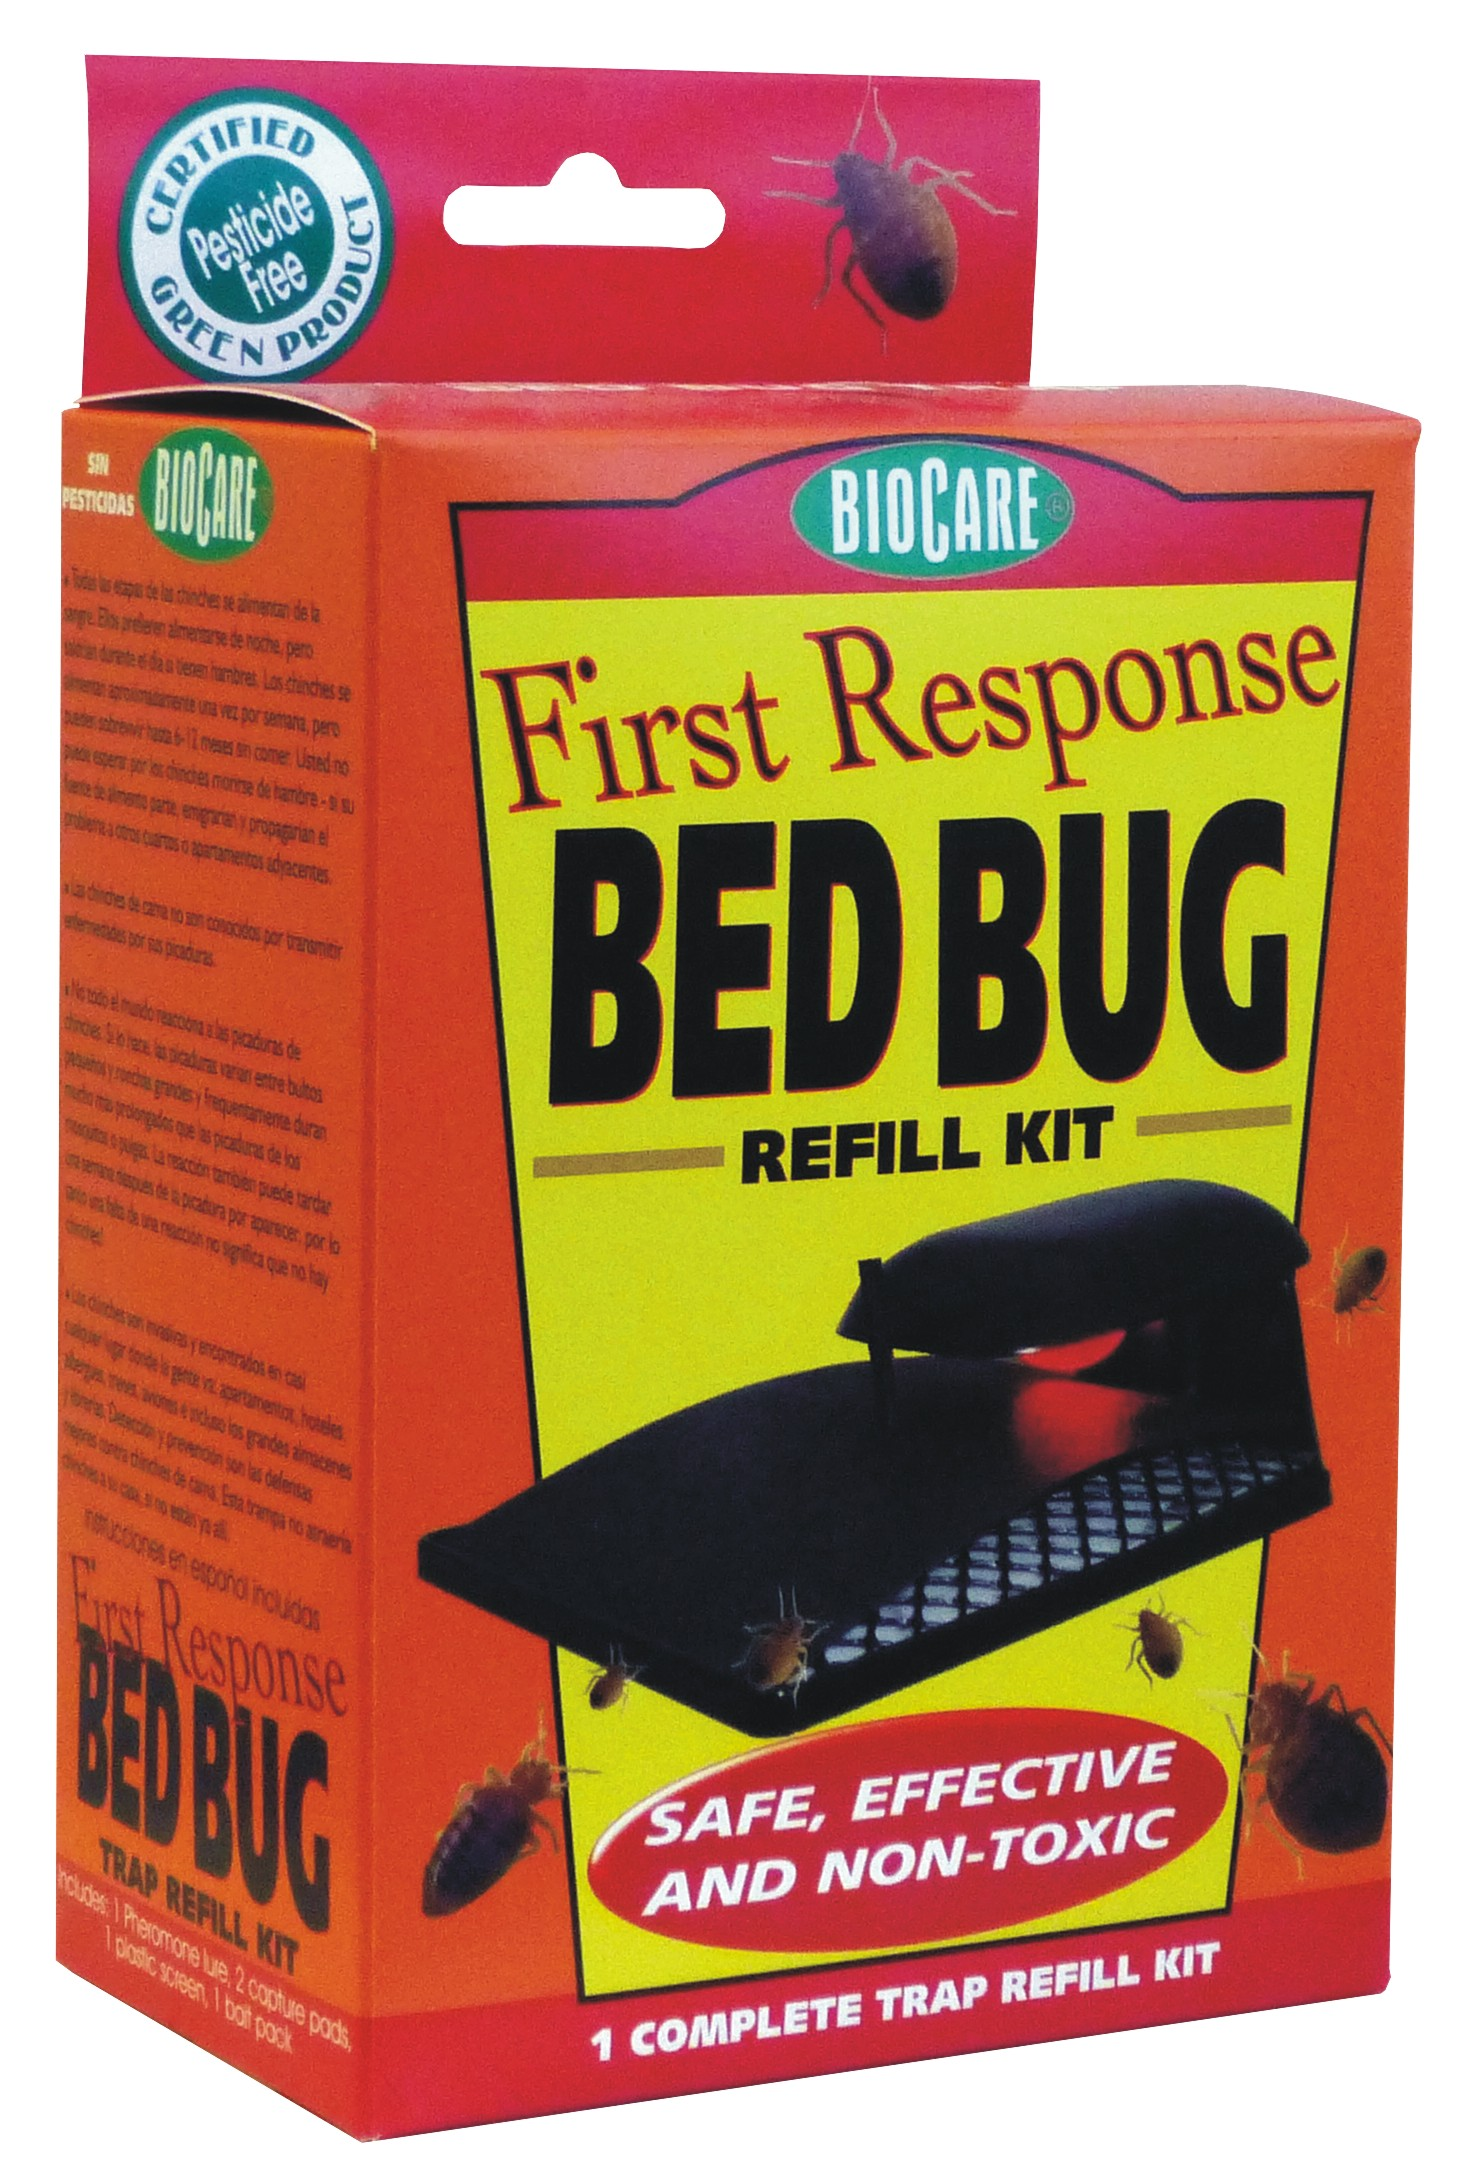 First Response Bed Bug Trap Refill Kit